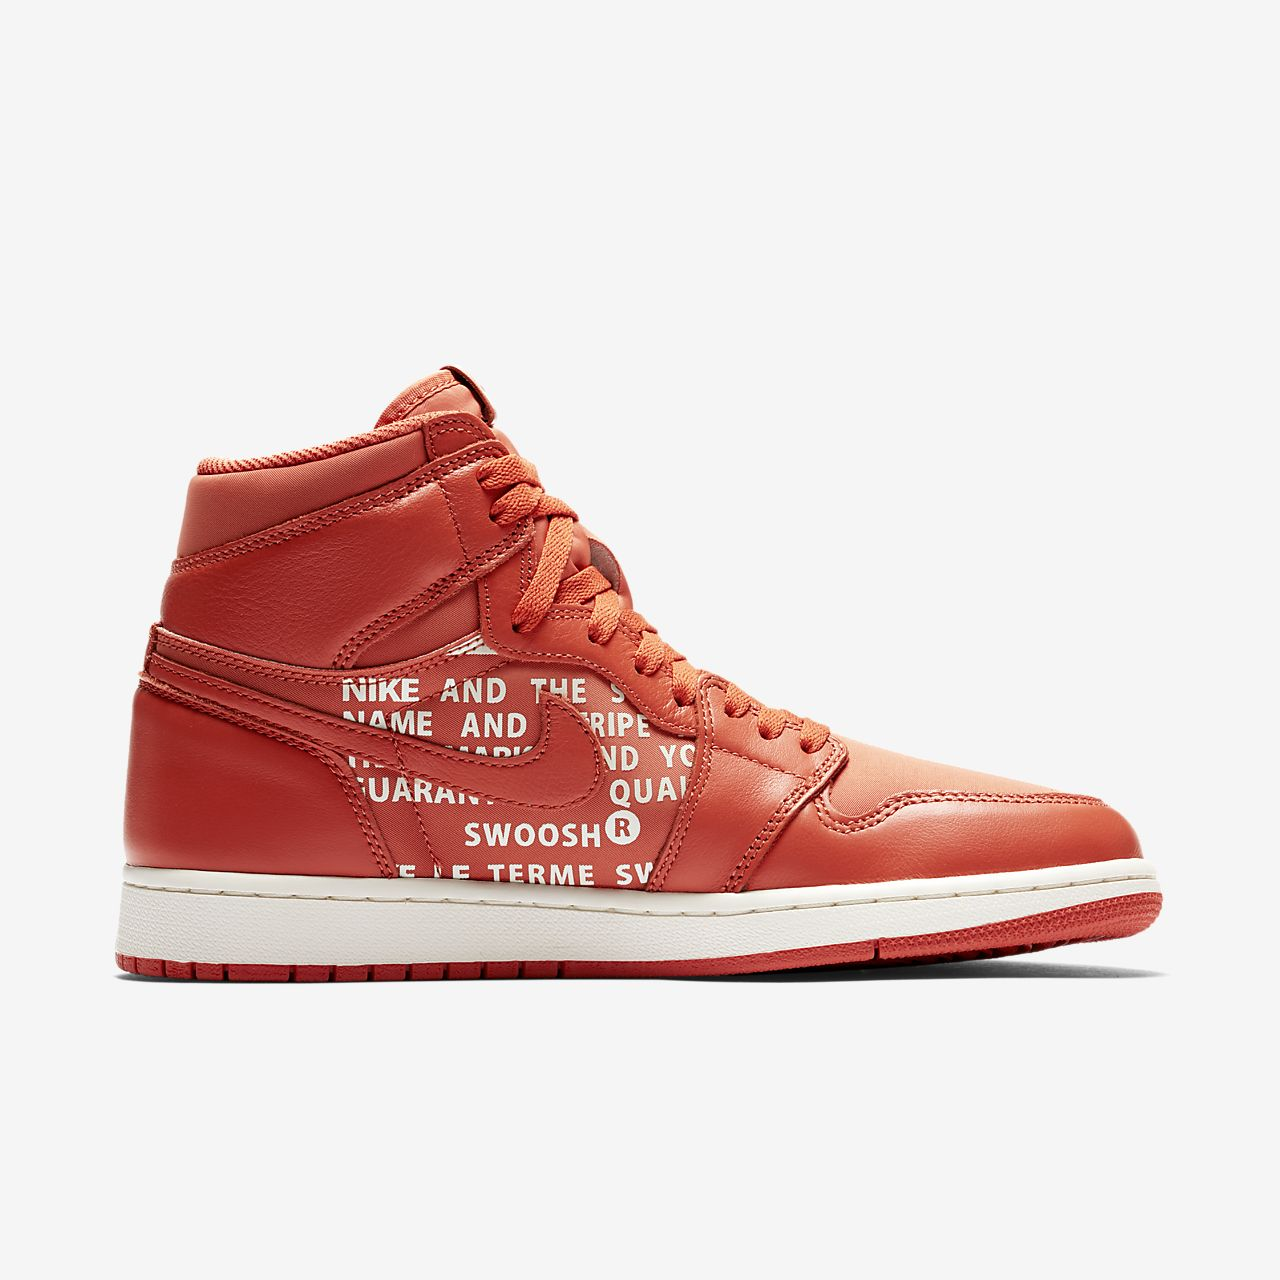 26854ffae802 Air Jordan 1 Retro High OG Shoe. Nike.com CA